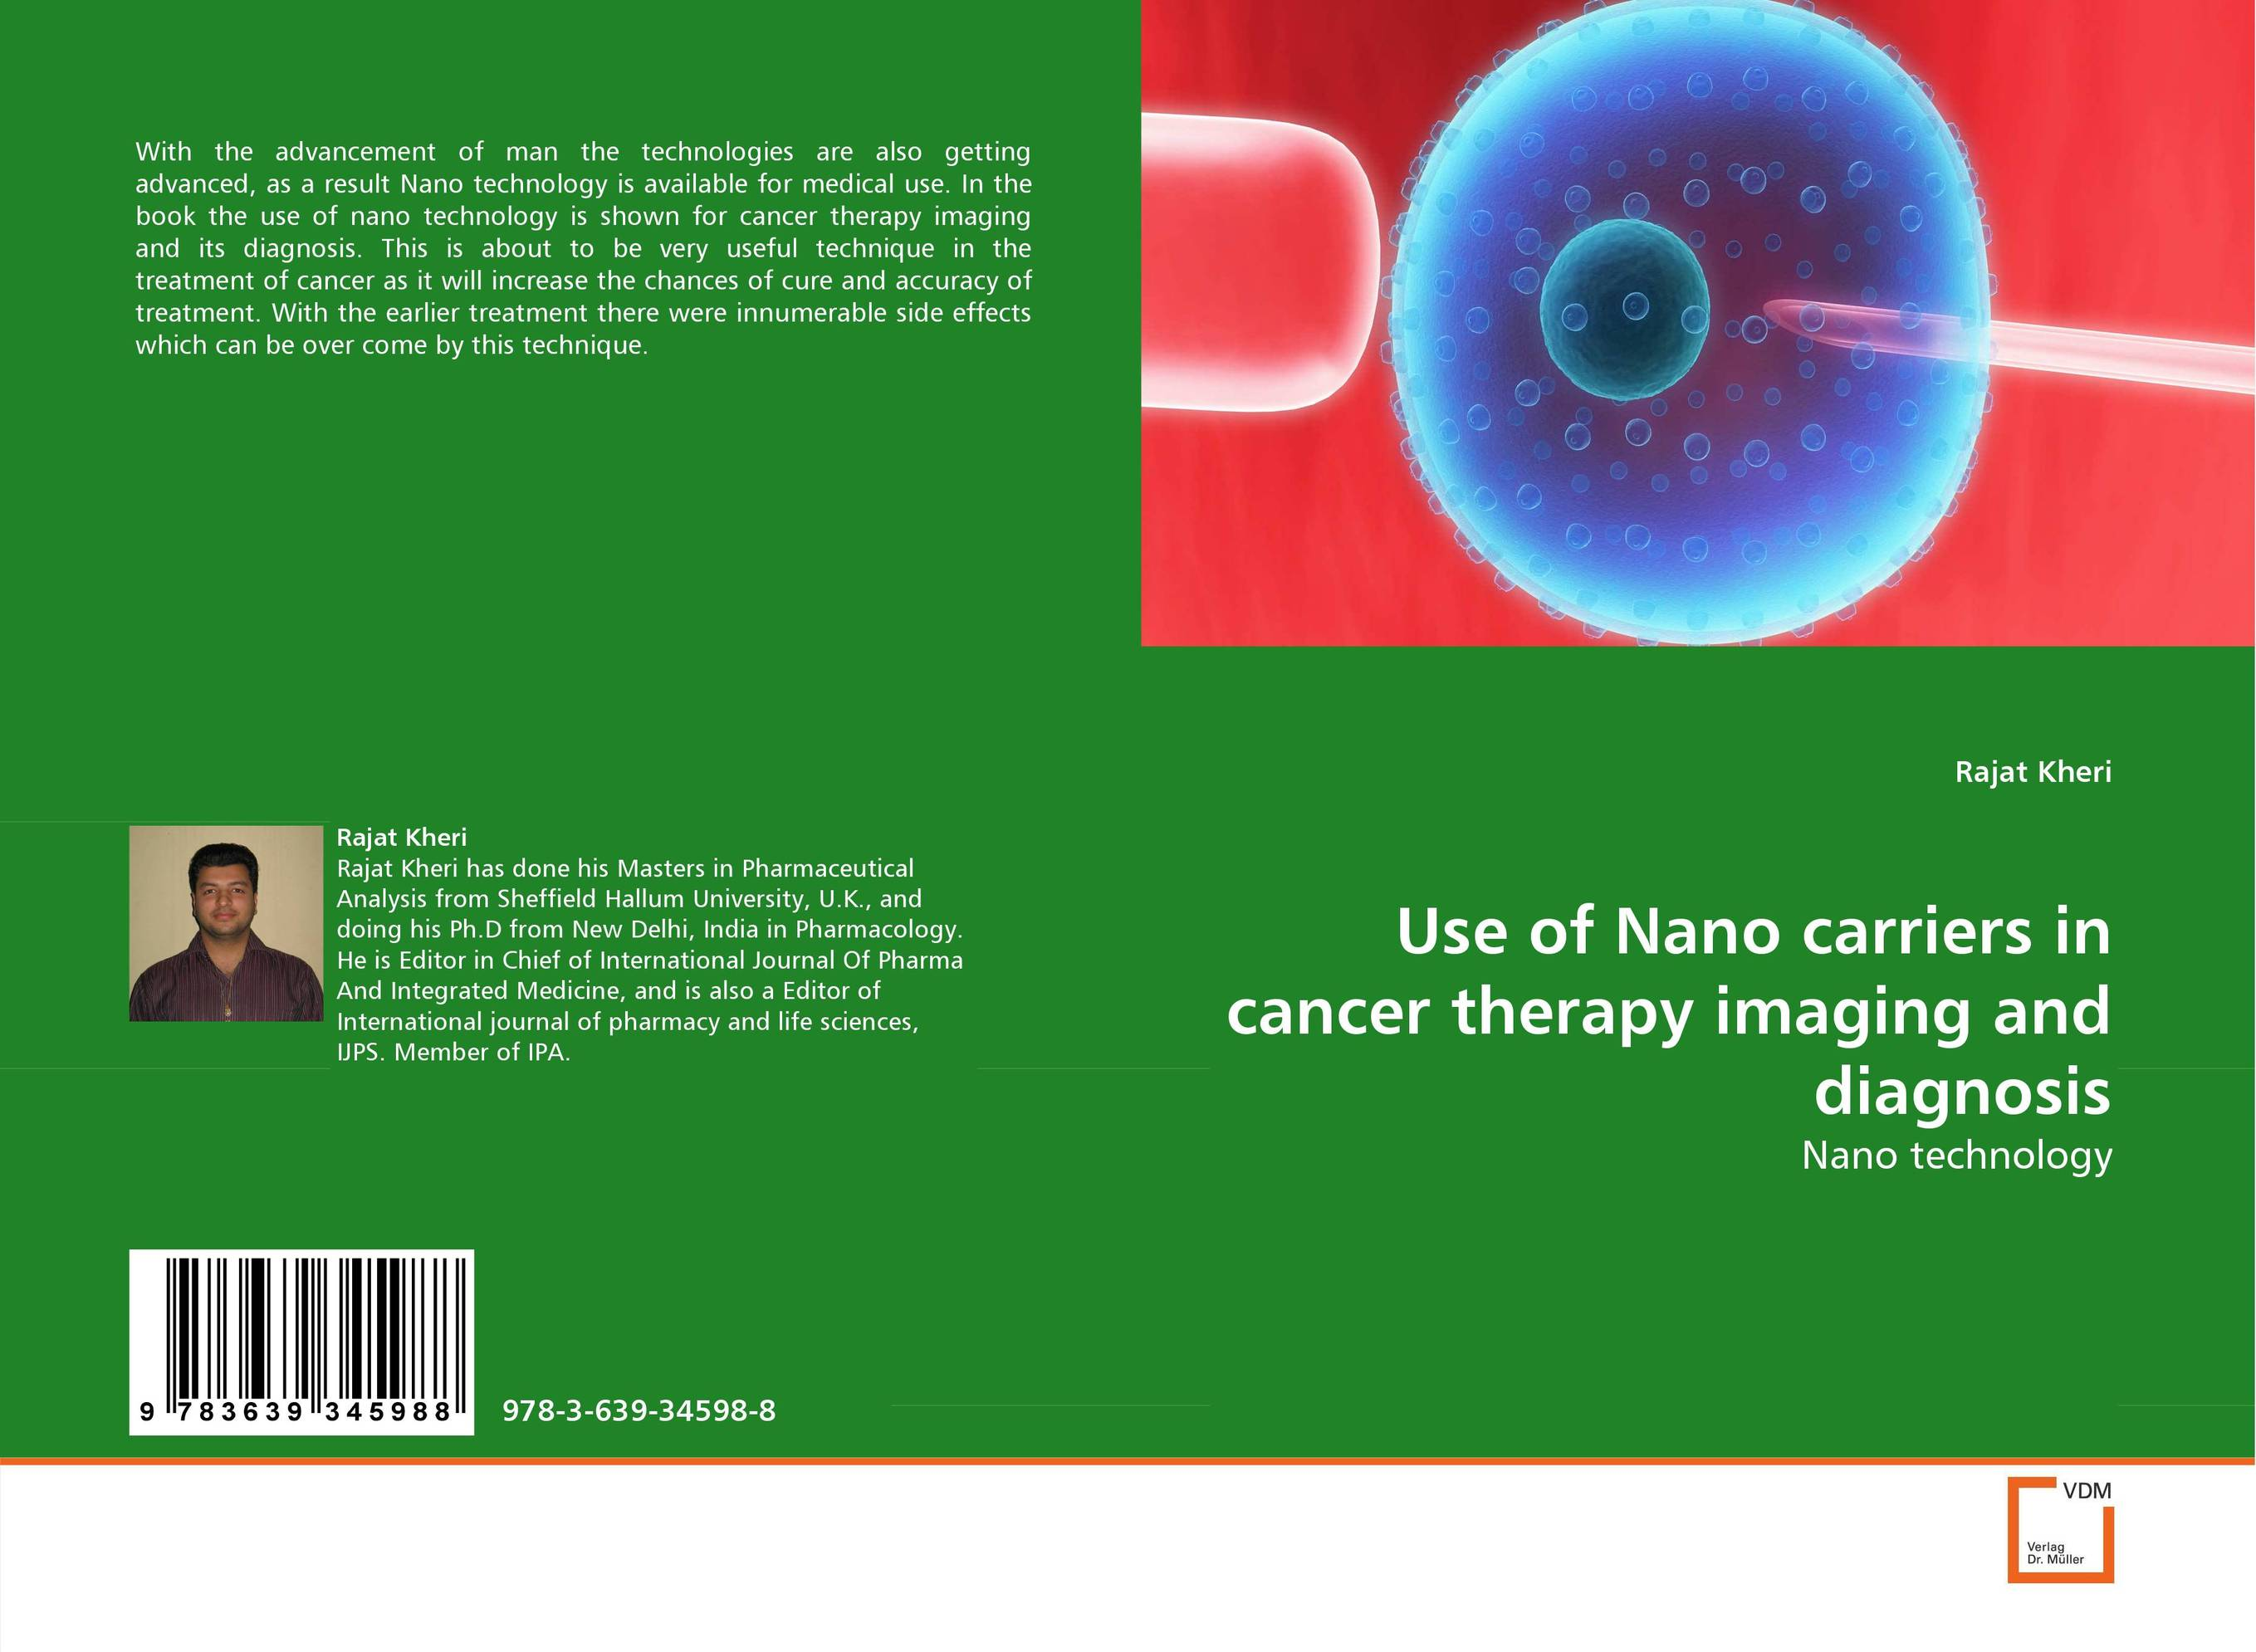 Use of Nano carriers in cancer therapy imaging and diagnosis late stage diagnosis of cervical cancer